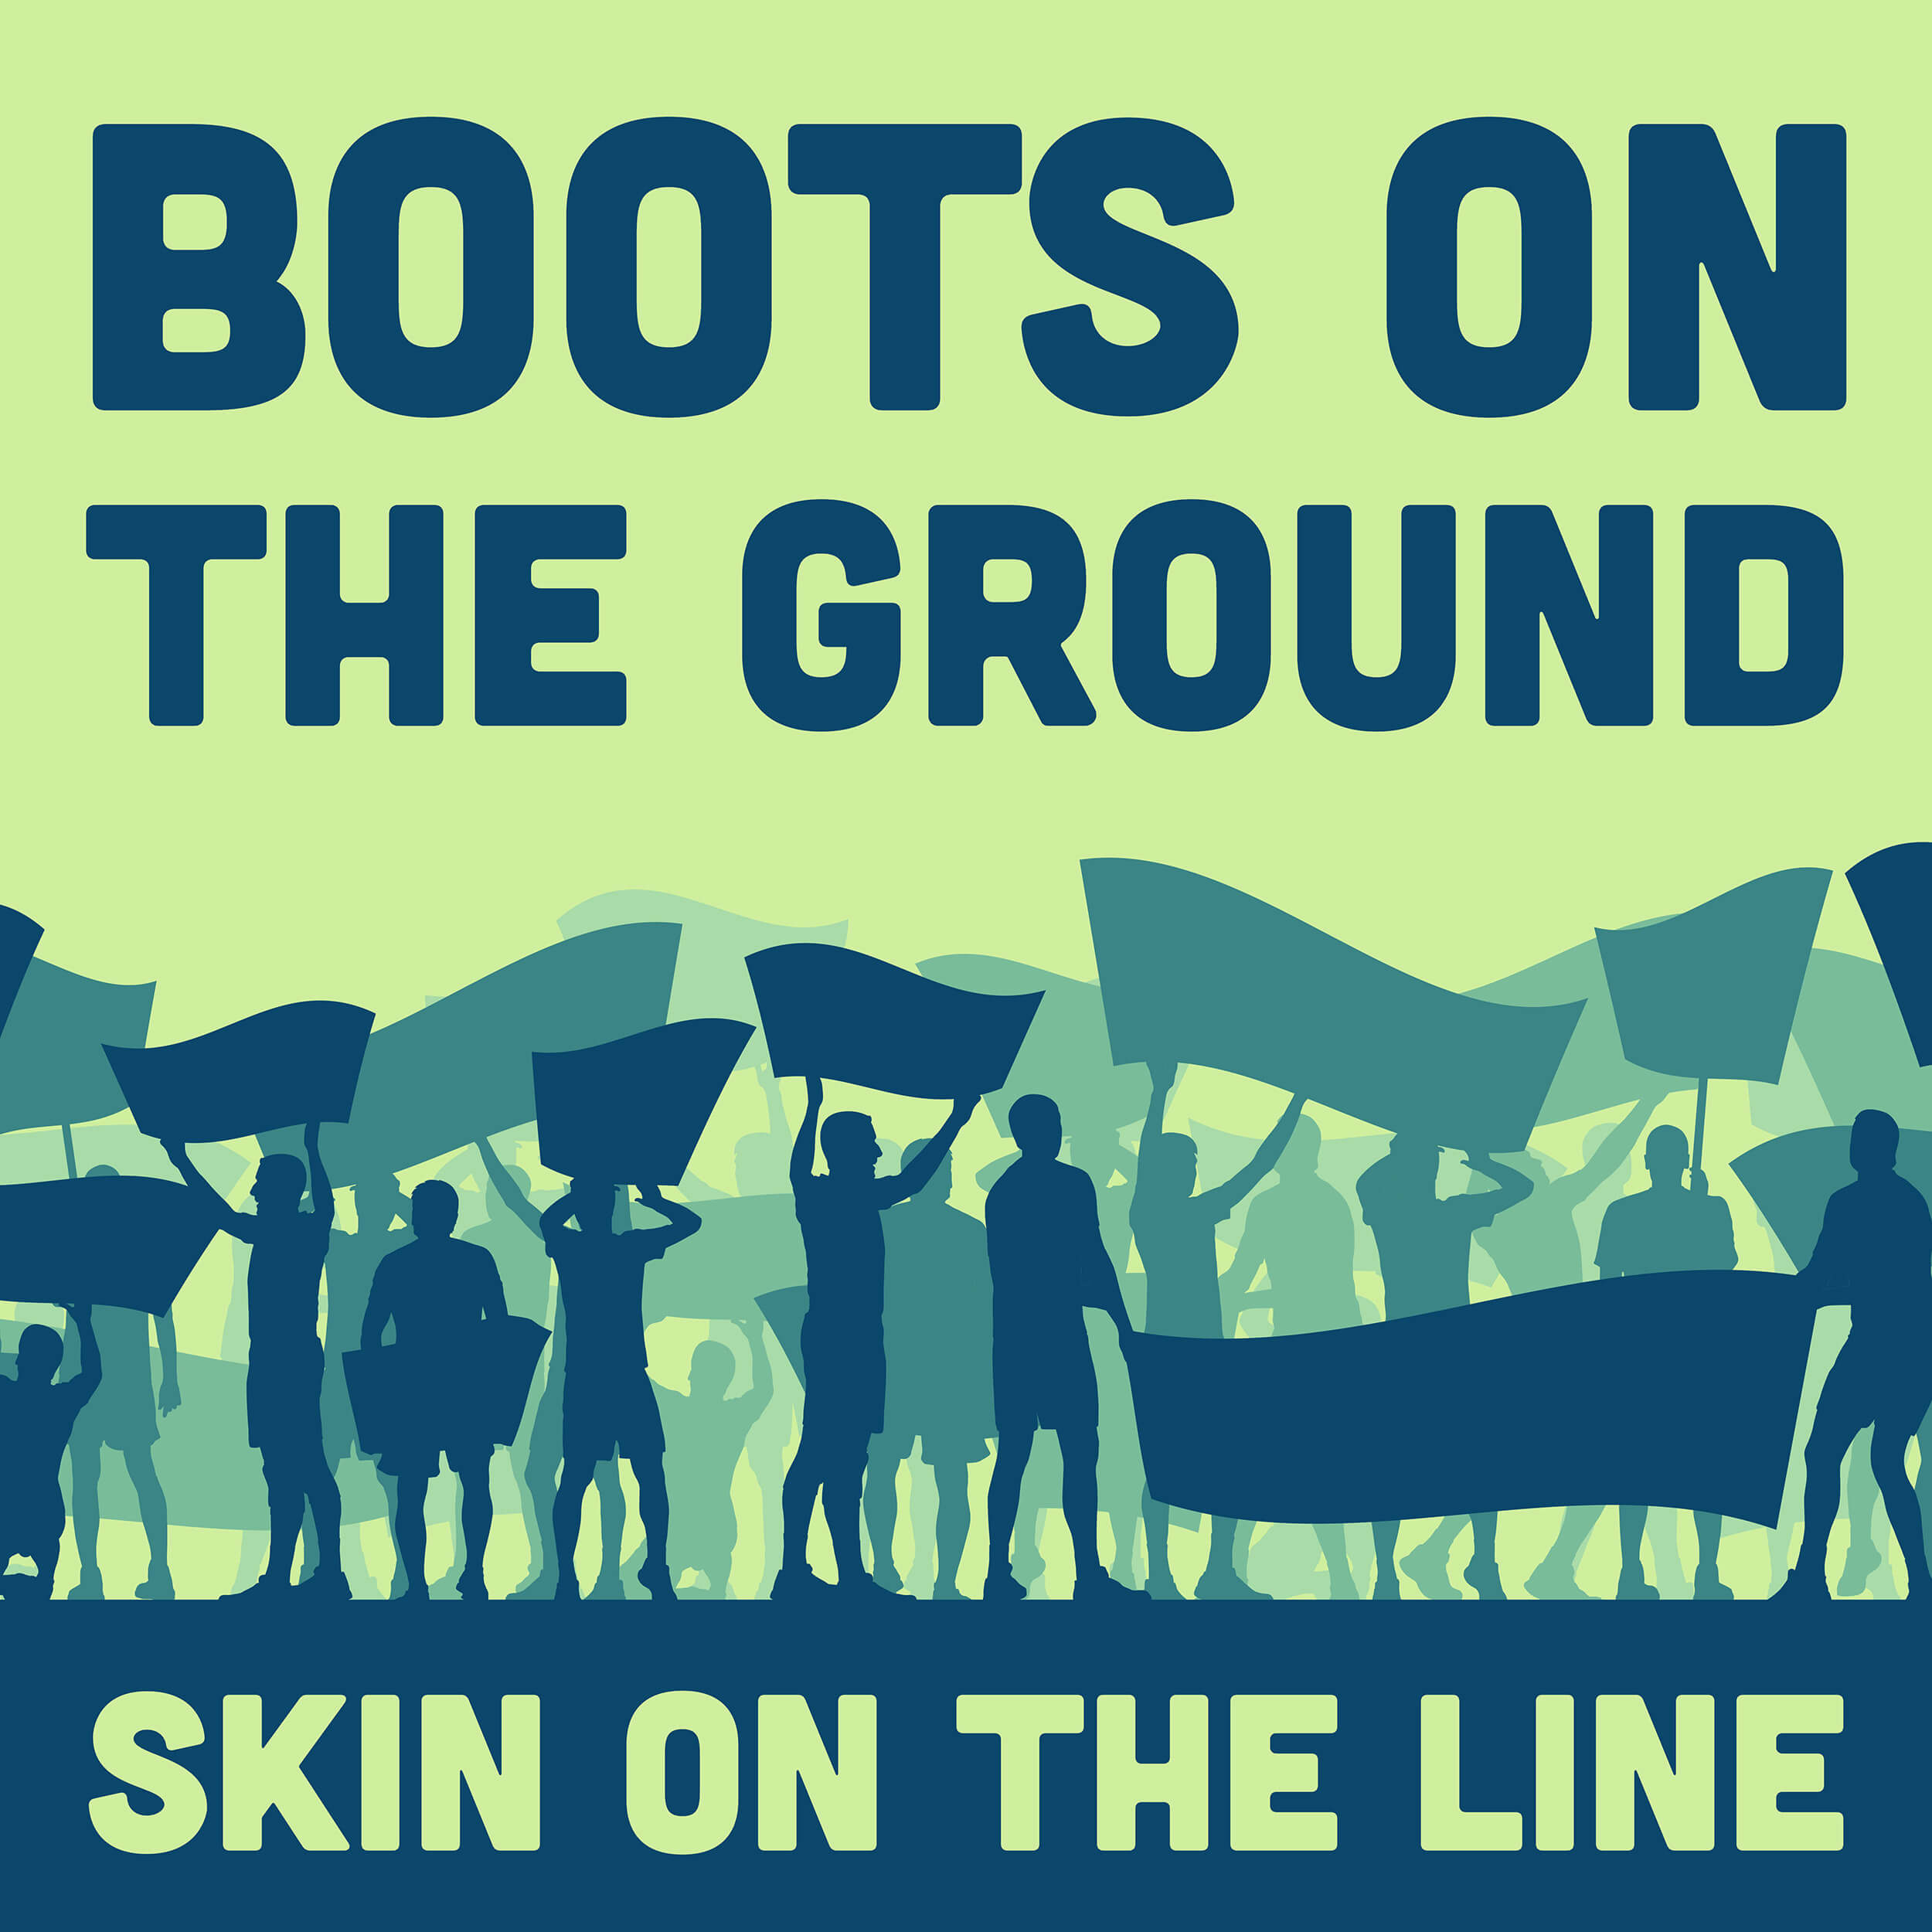 Boots on the Ground Skin on the Line